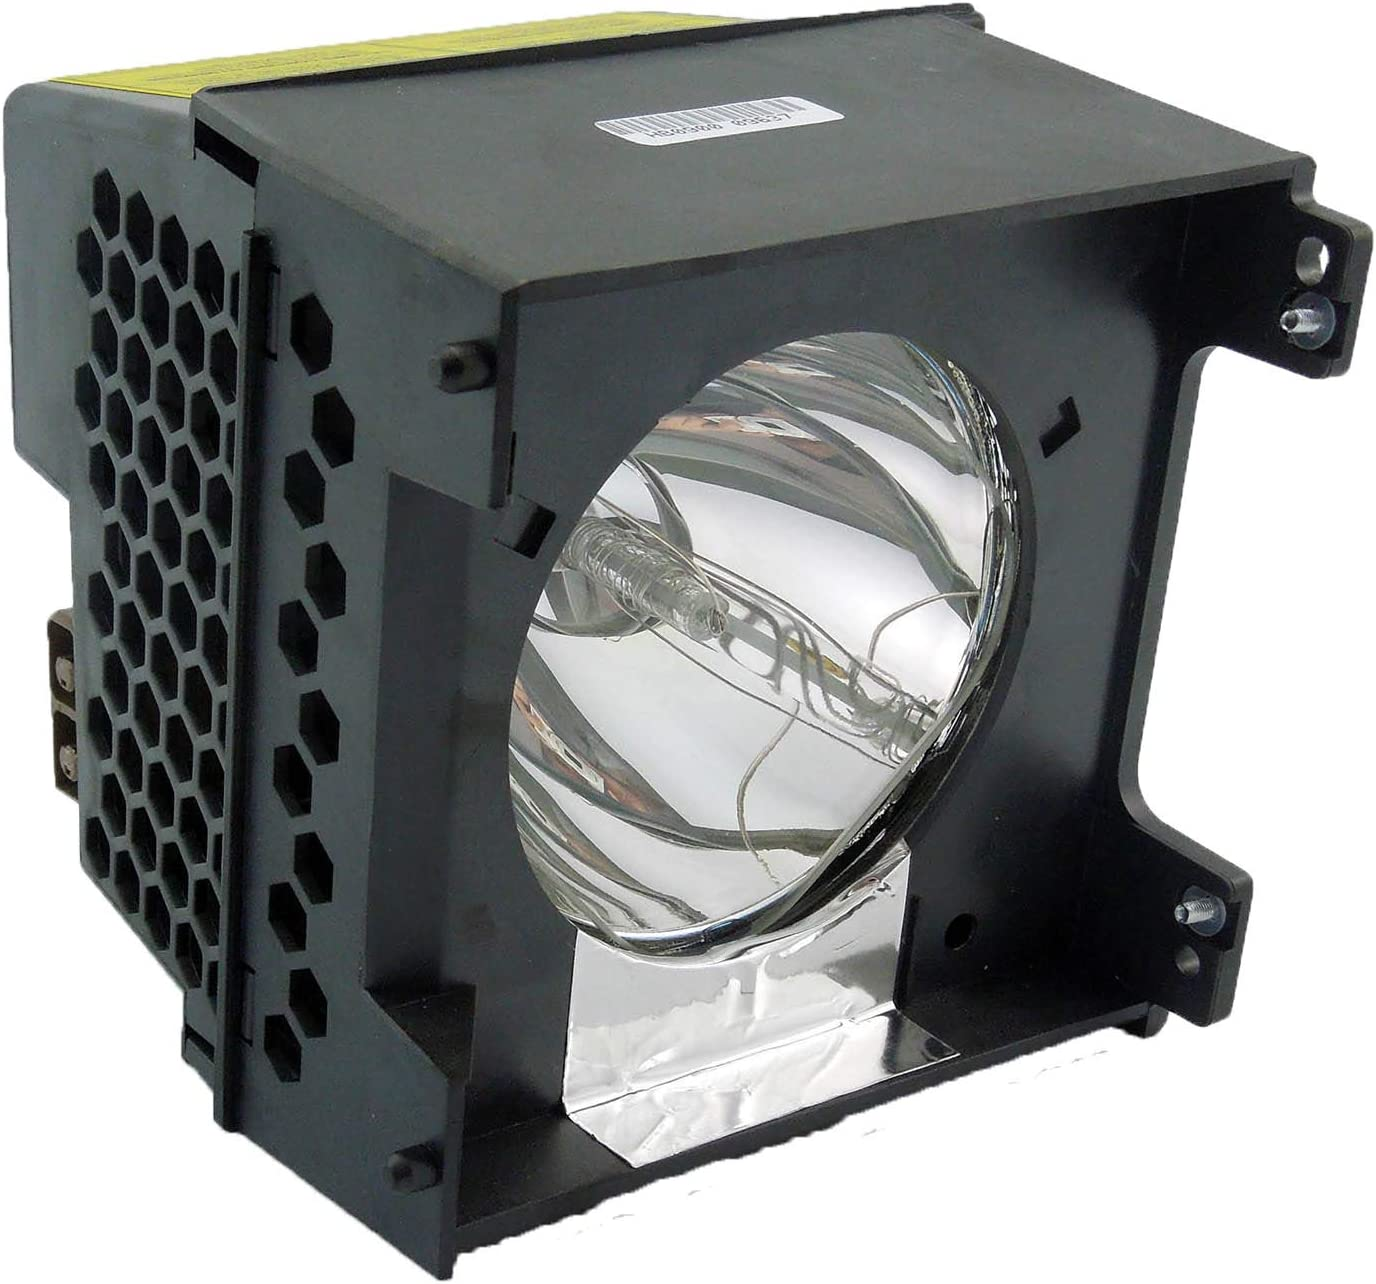 50HM66 65HM167 50HMX96 65HM117 56HM16 50HM16 56HM66 GOLDENRIVER Y67-LMP//75007091//75008204 A+Class Quality Replacement Lamp with Housing Compatible with Toshiba TVs 57HM167 56HMX96